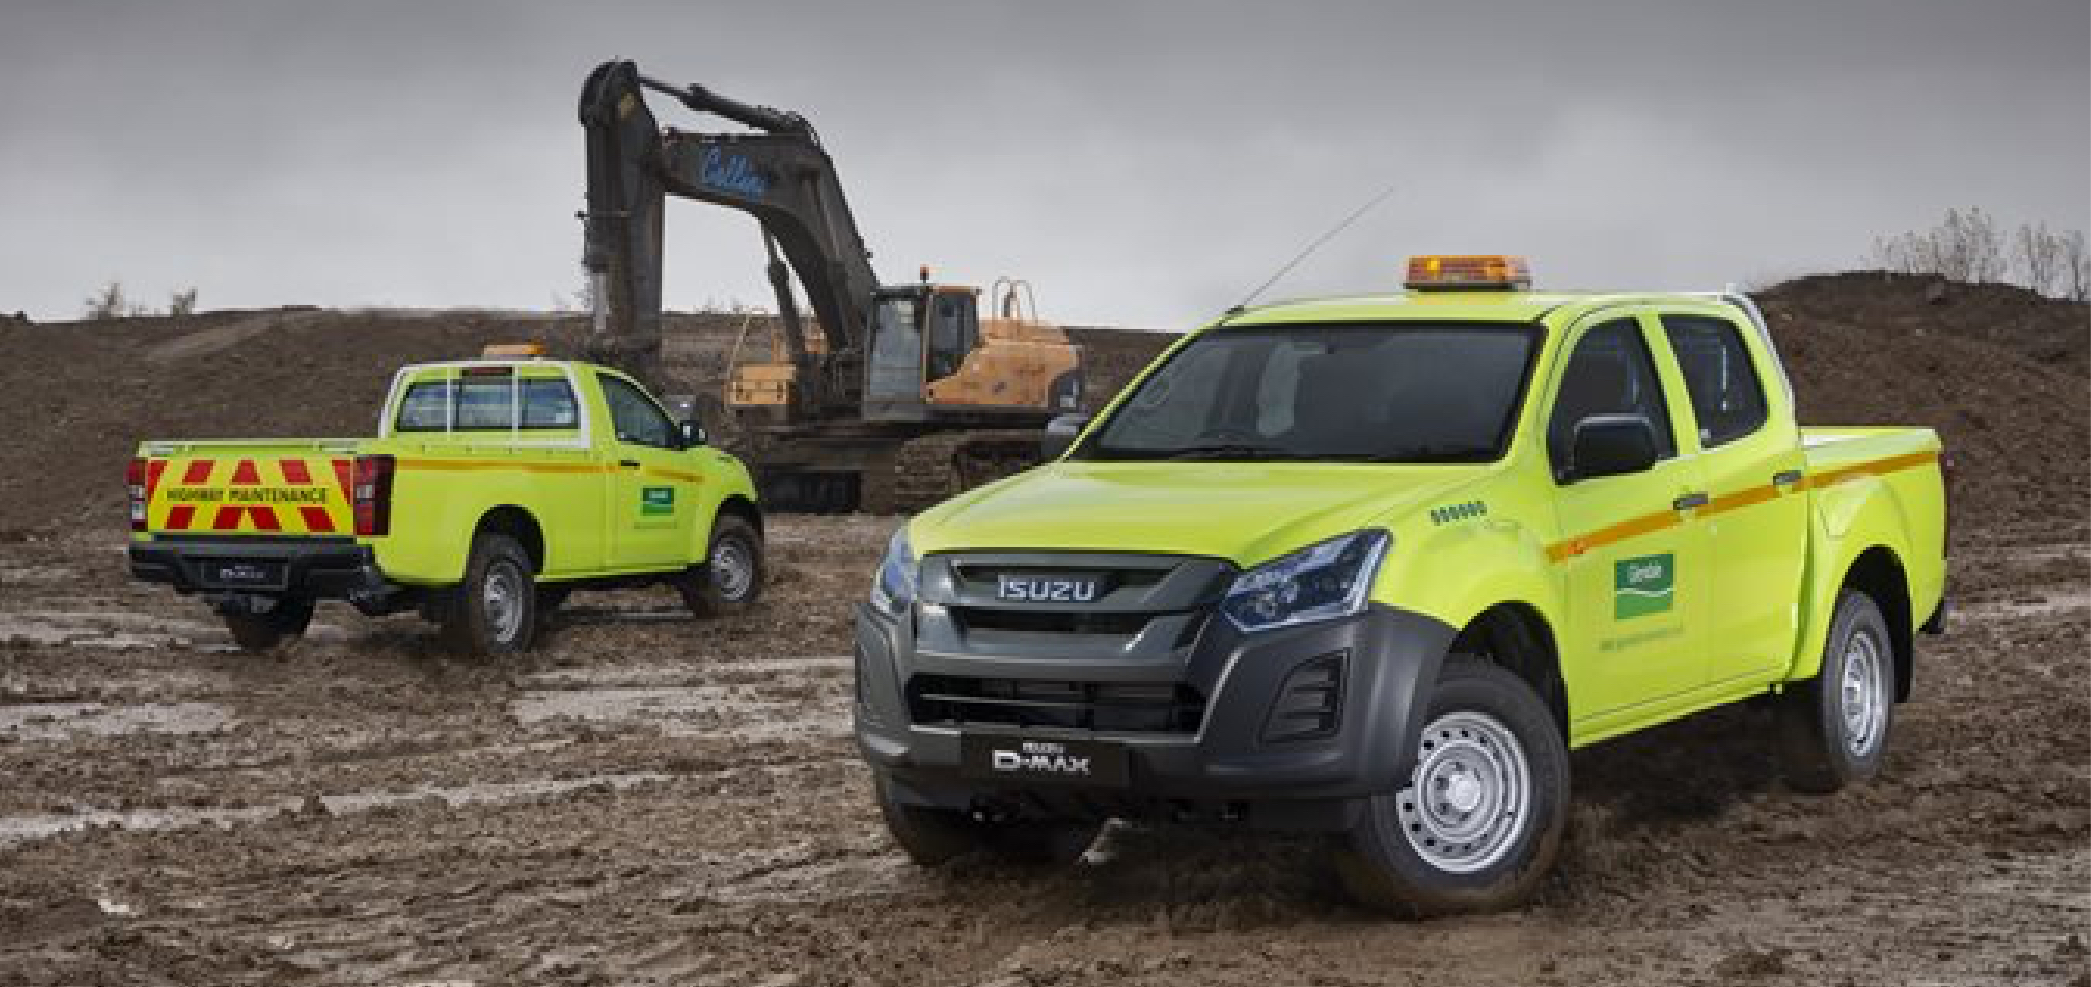 Isuzu D Max fleet on construction site